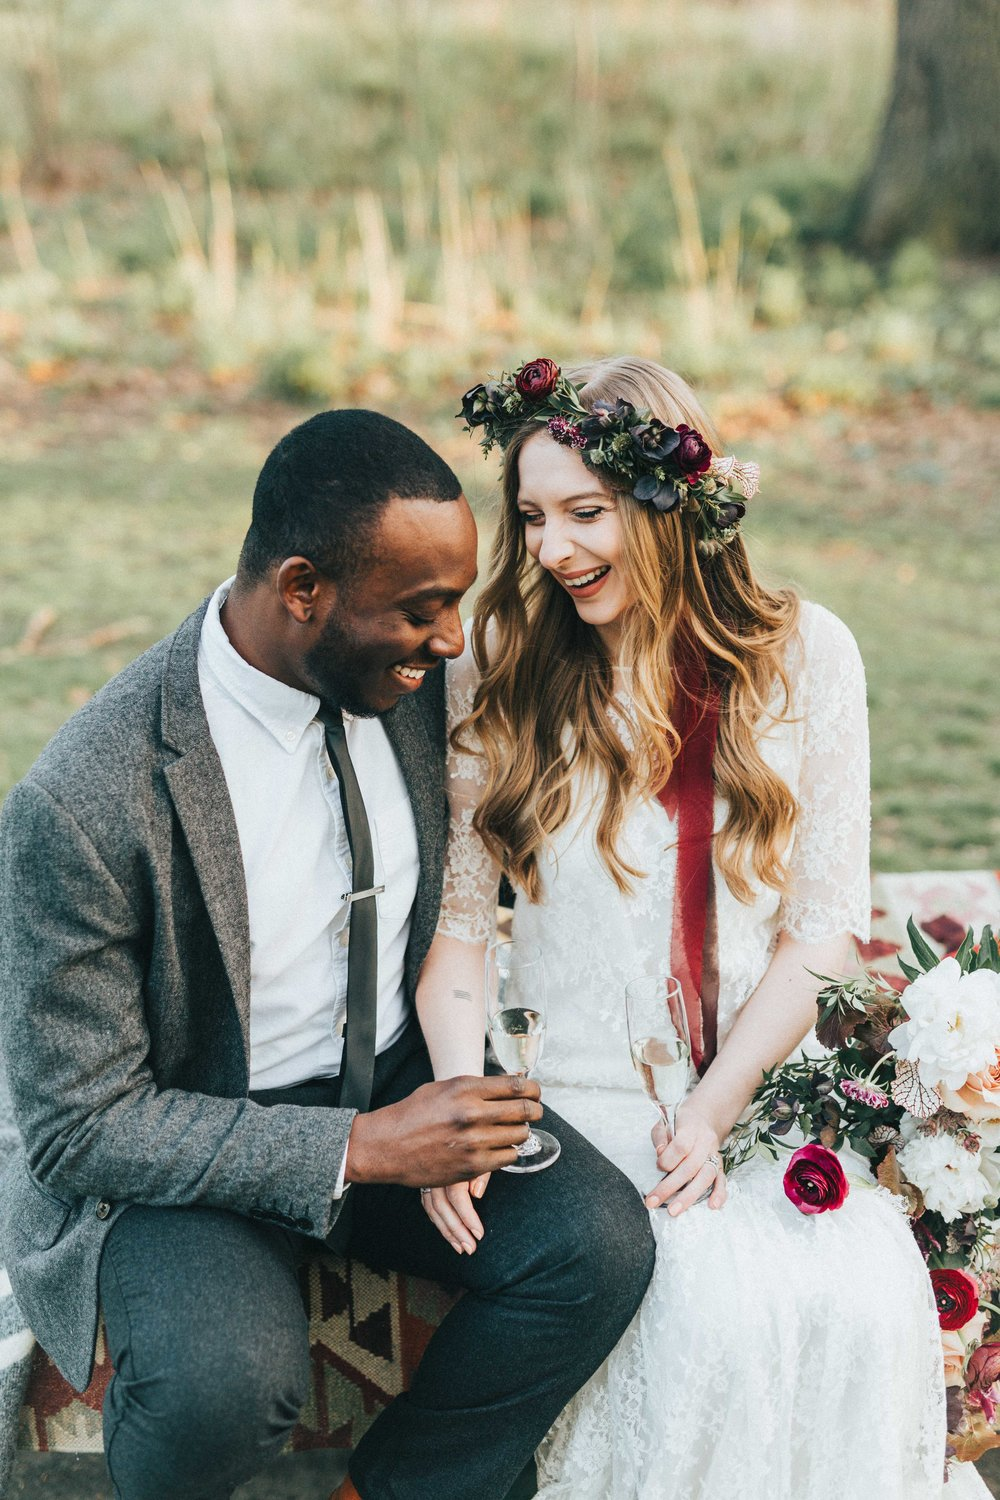 I N V E S T M E NT - · 9 hours of coverage· A secondary shooter· Pre-planning consulting· 500+ edited high resolution images· An online gallery to share with family & friendsFee: $4,300 plus hst + travelAD-ON*450 + hst engagement shoot* Custom packages are available *Less time? More time?Let us know what you need!